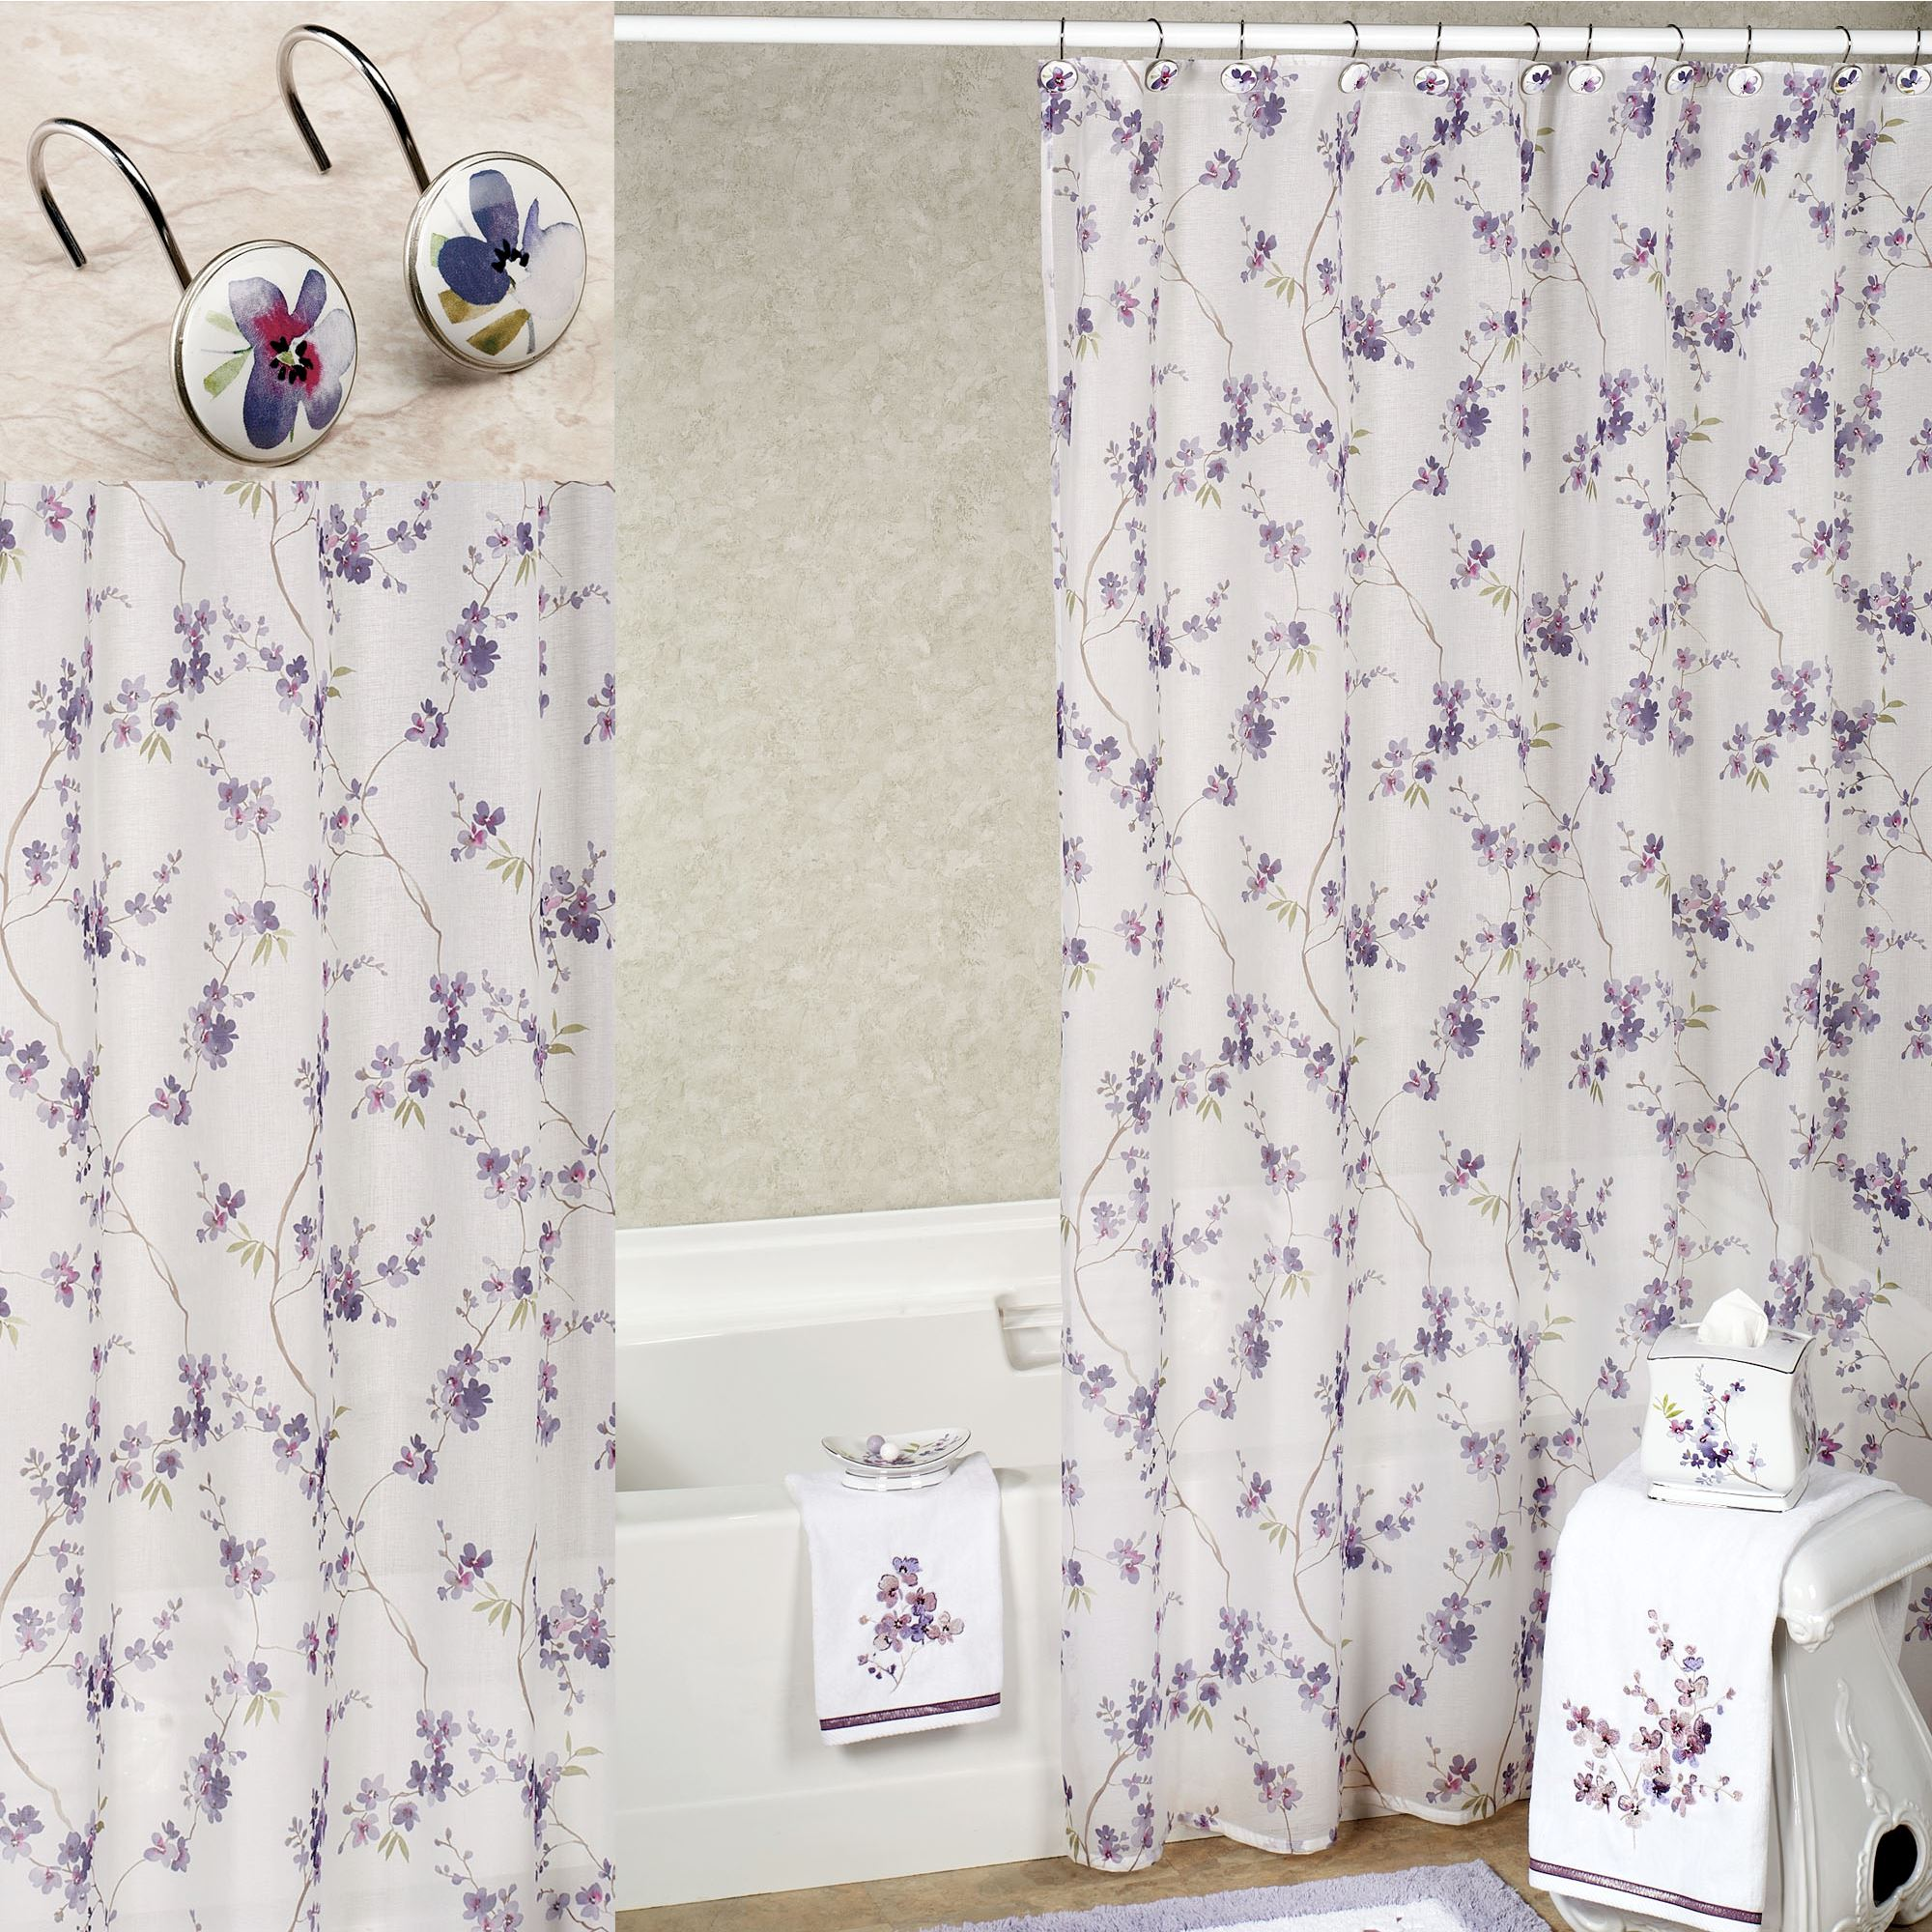 Floral Shower Curtain | Coral Shower Curtain | Indian Shower Curtains